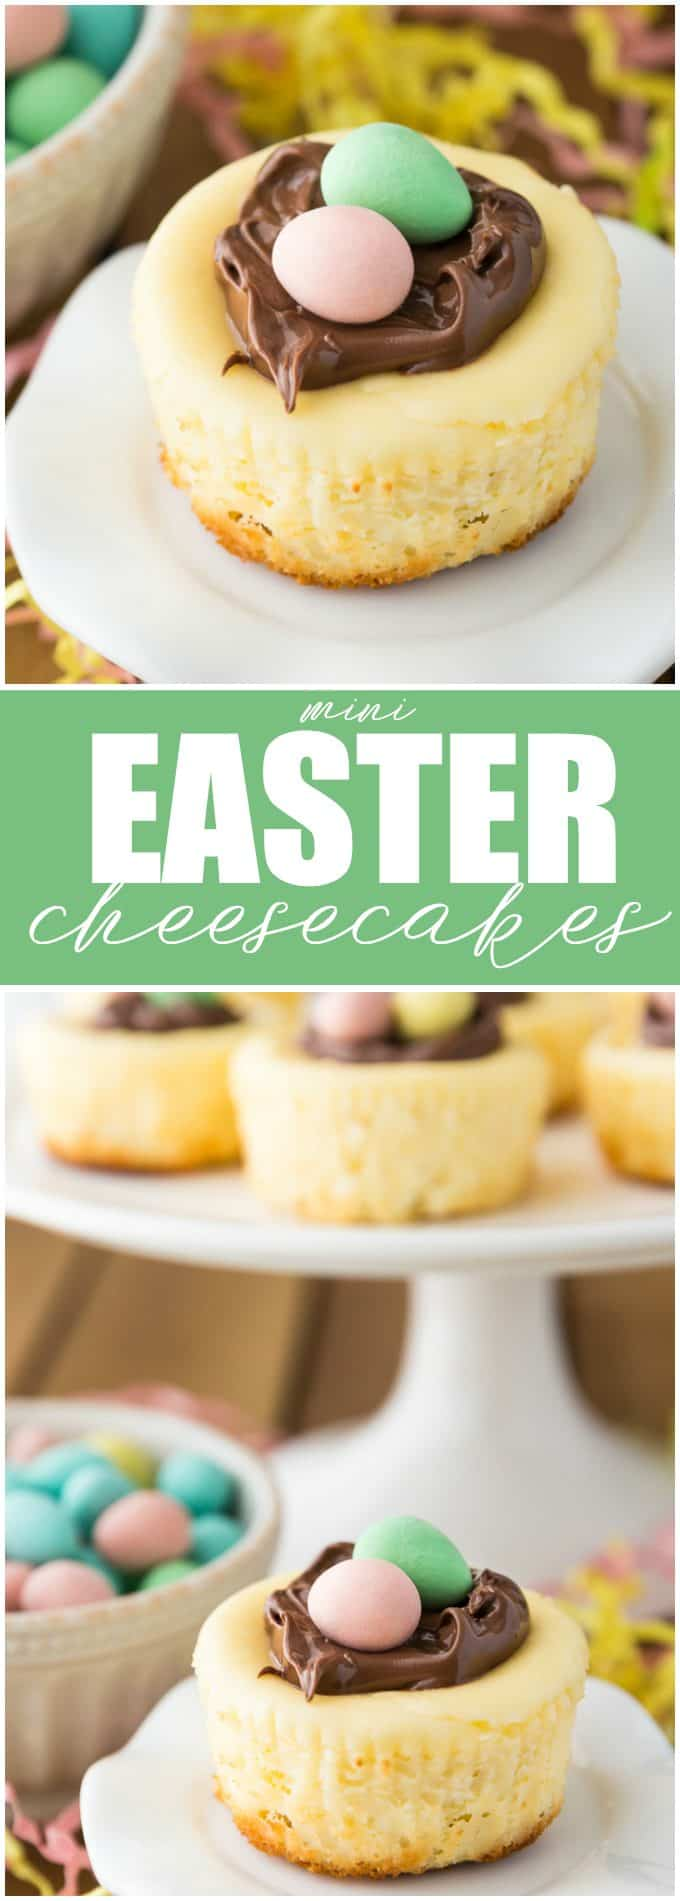 Mini Easter Cheesecakes - These individual cheesecakes are the perfect dessert to take to a potluck! Unlike a full-sized cheesecake, these mini delights don't need a water bath and are very easy to make!